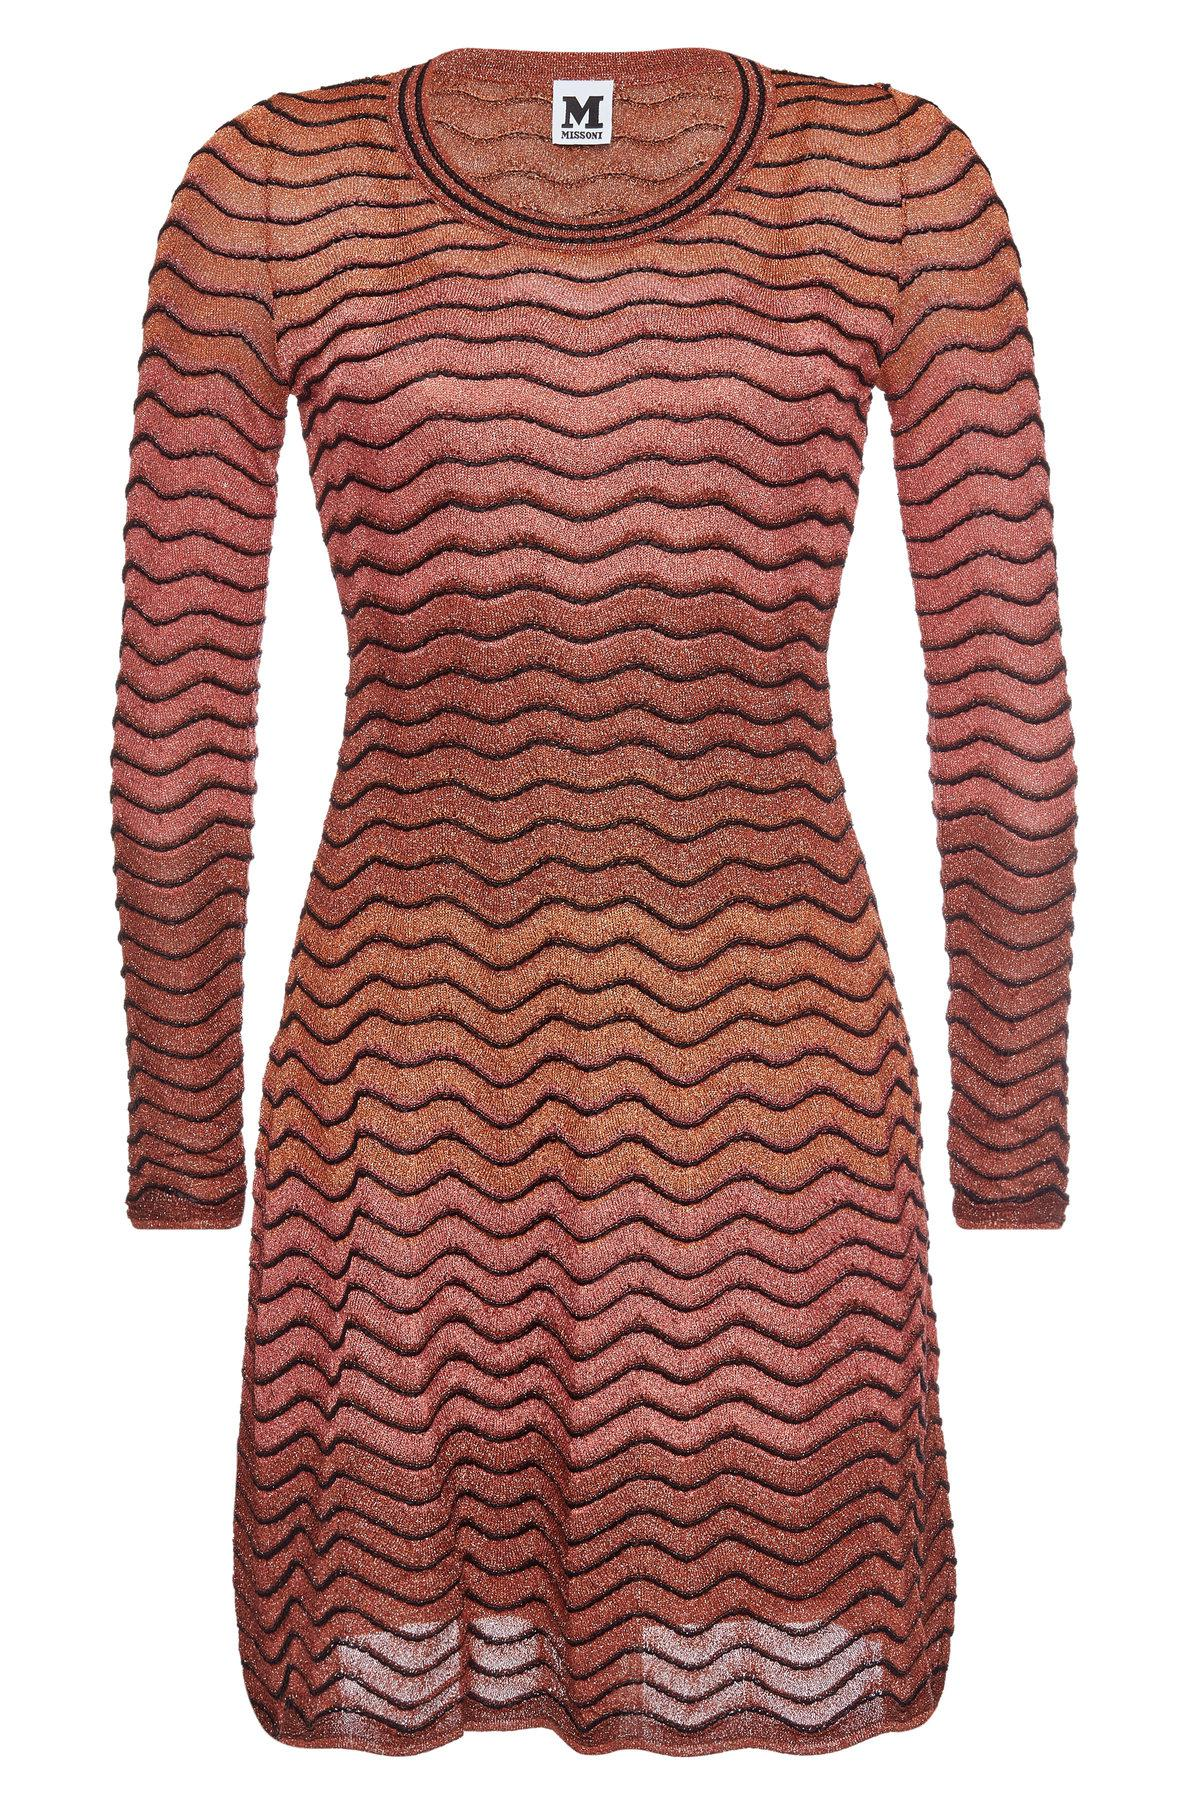 15e09798d9b2 M Missoni Knit Dress With Metallic Thread in Red - Lyst